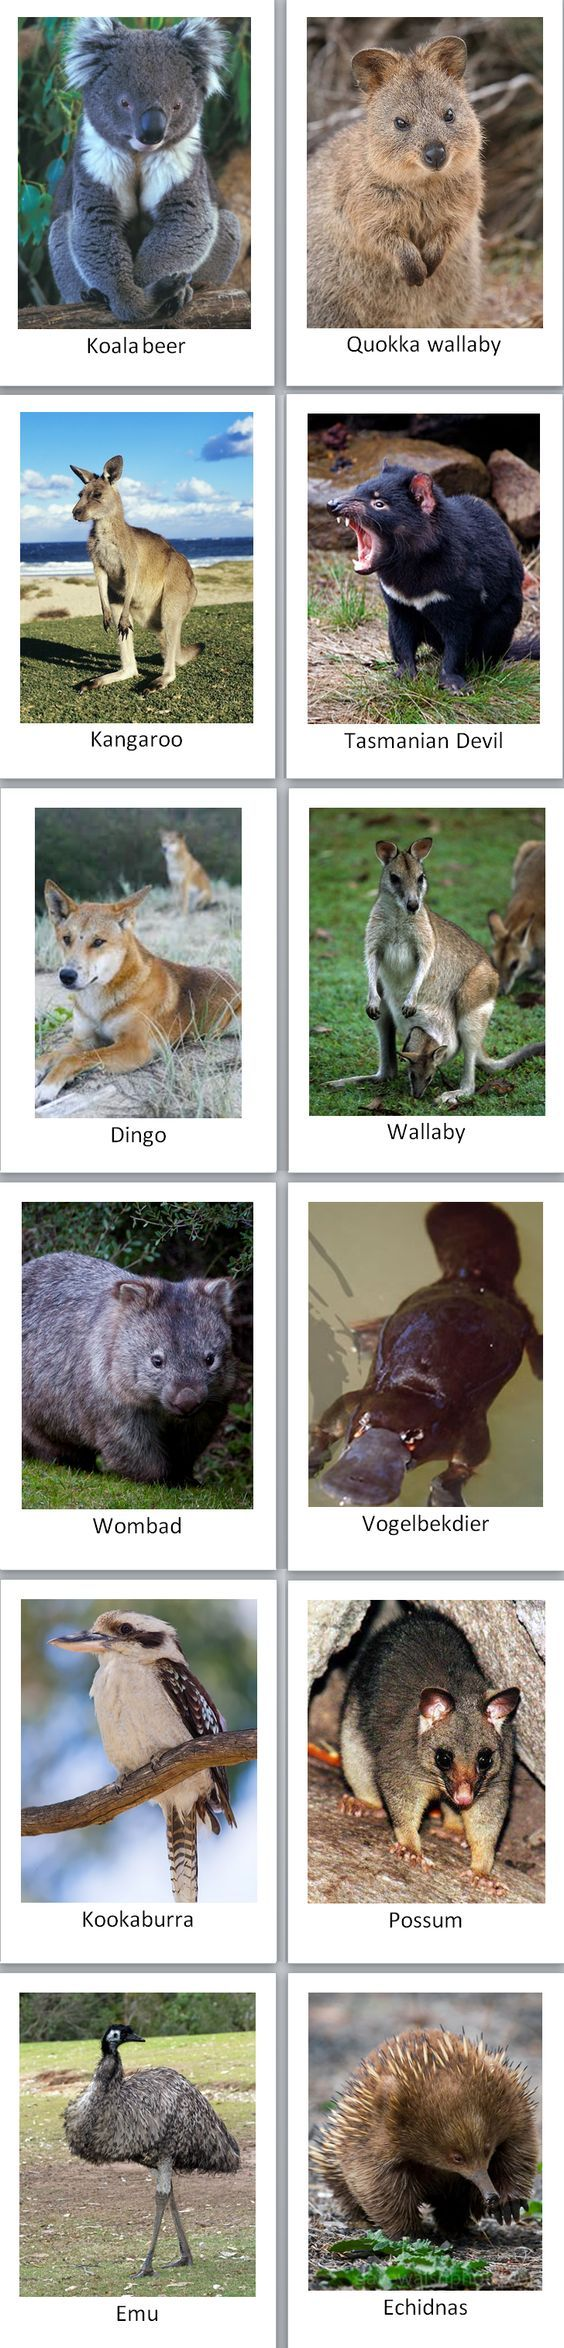 my continent box - Australia: Australian animal cards: